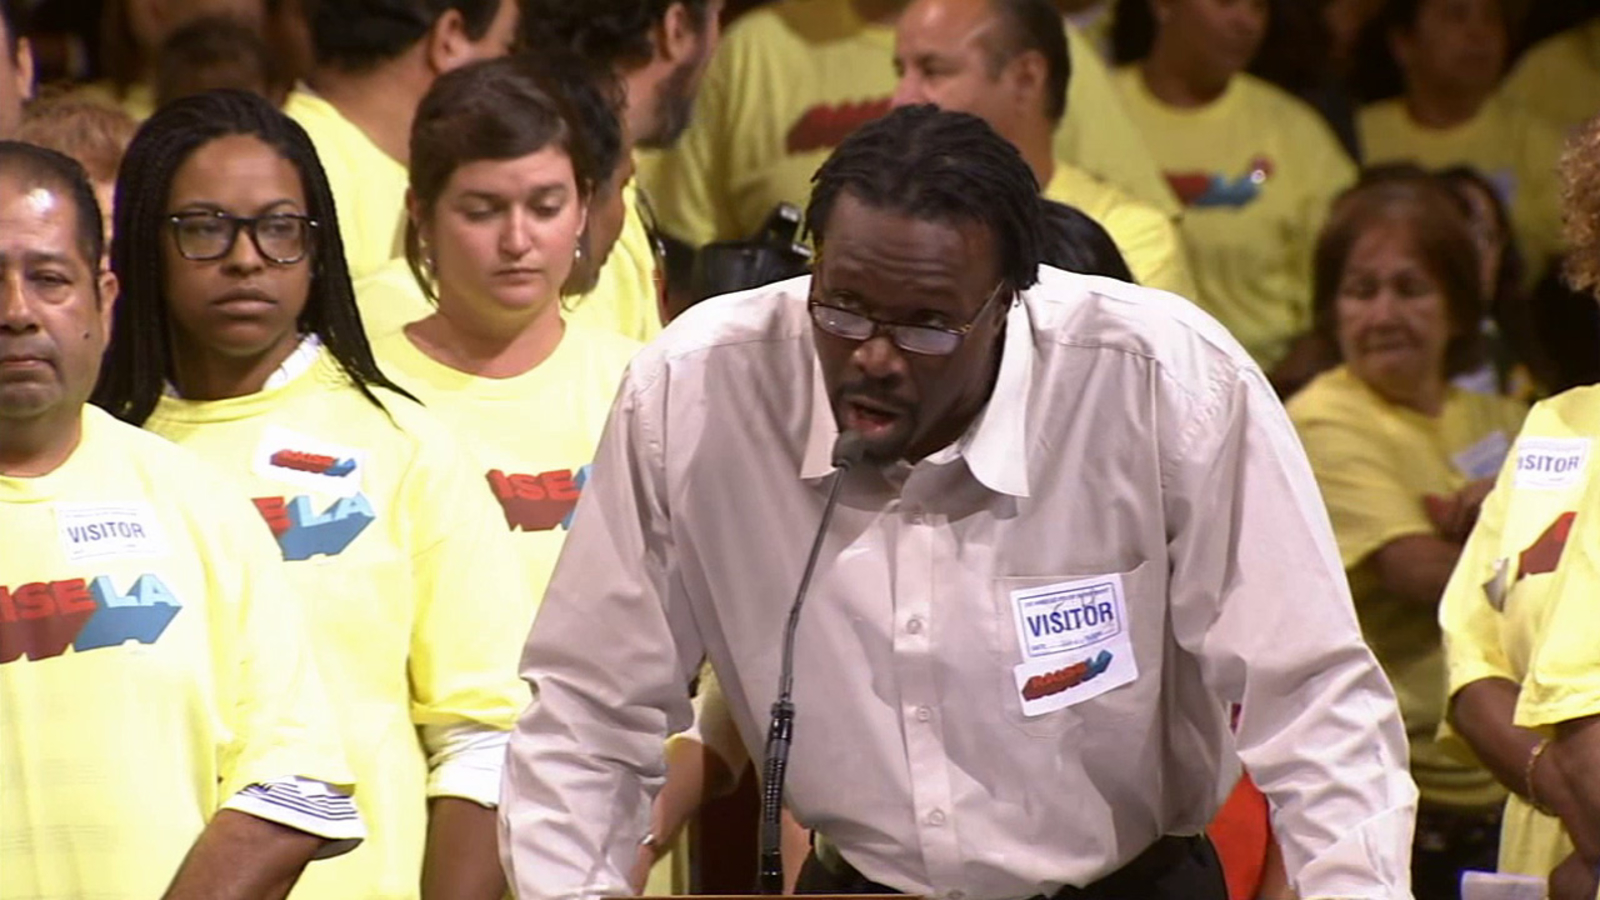 Los Angeles City Council tentatively approves $15.37 wage for hotel workers